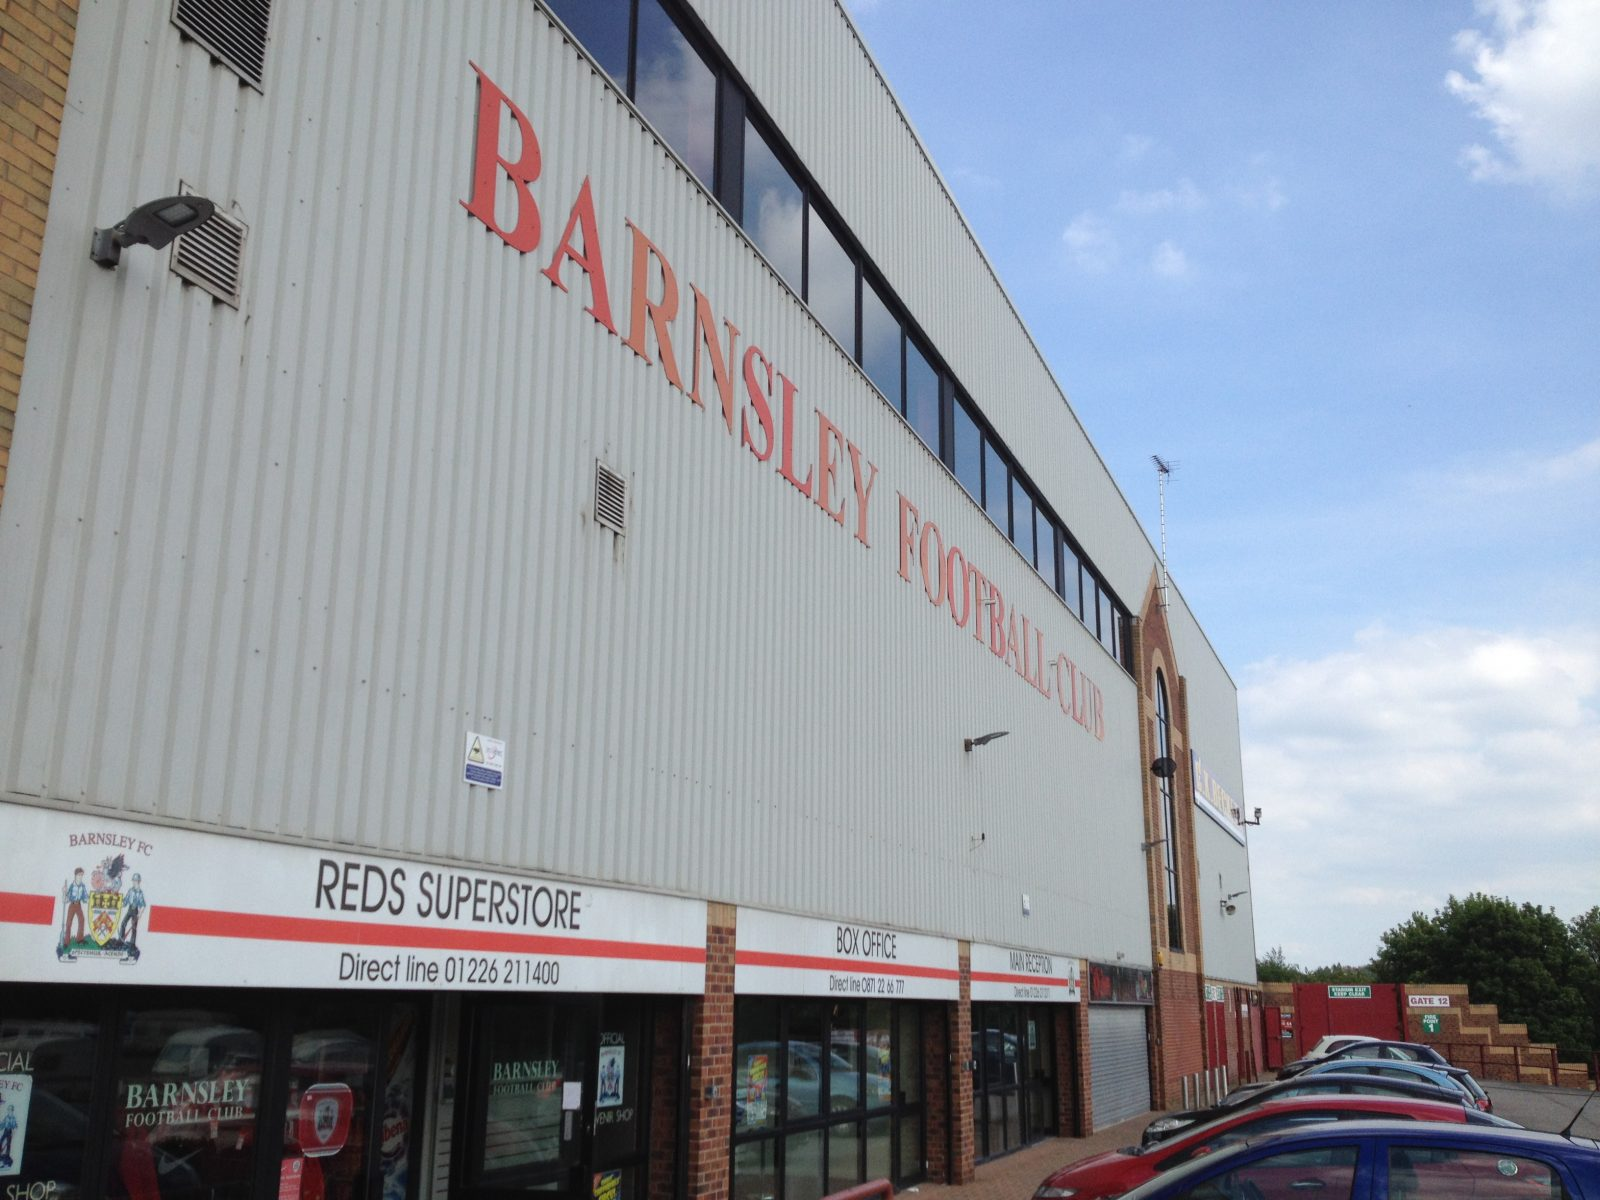 Barnsley FC - main entrance